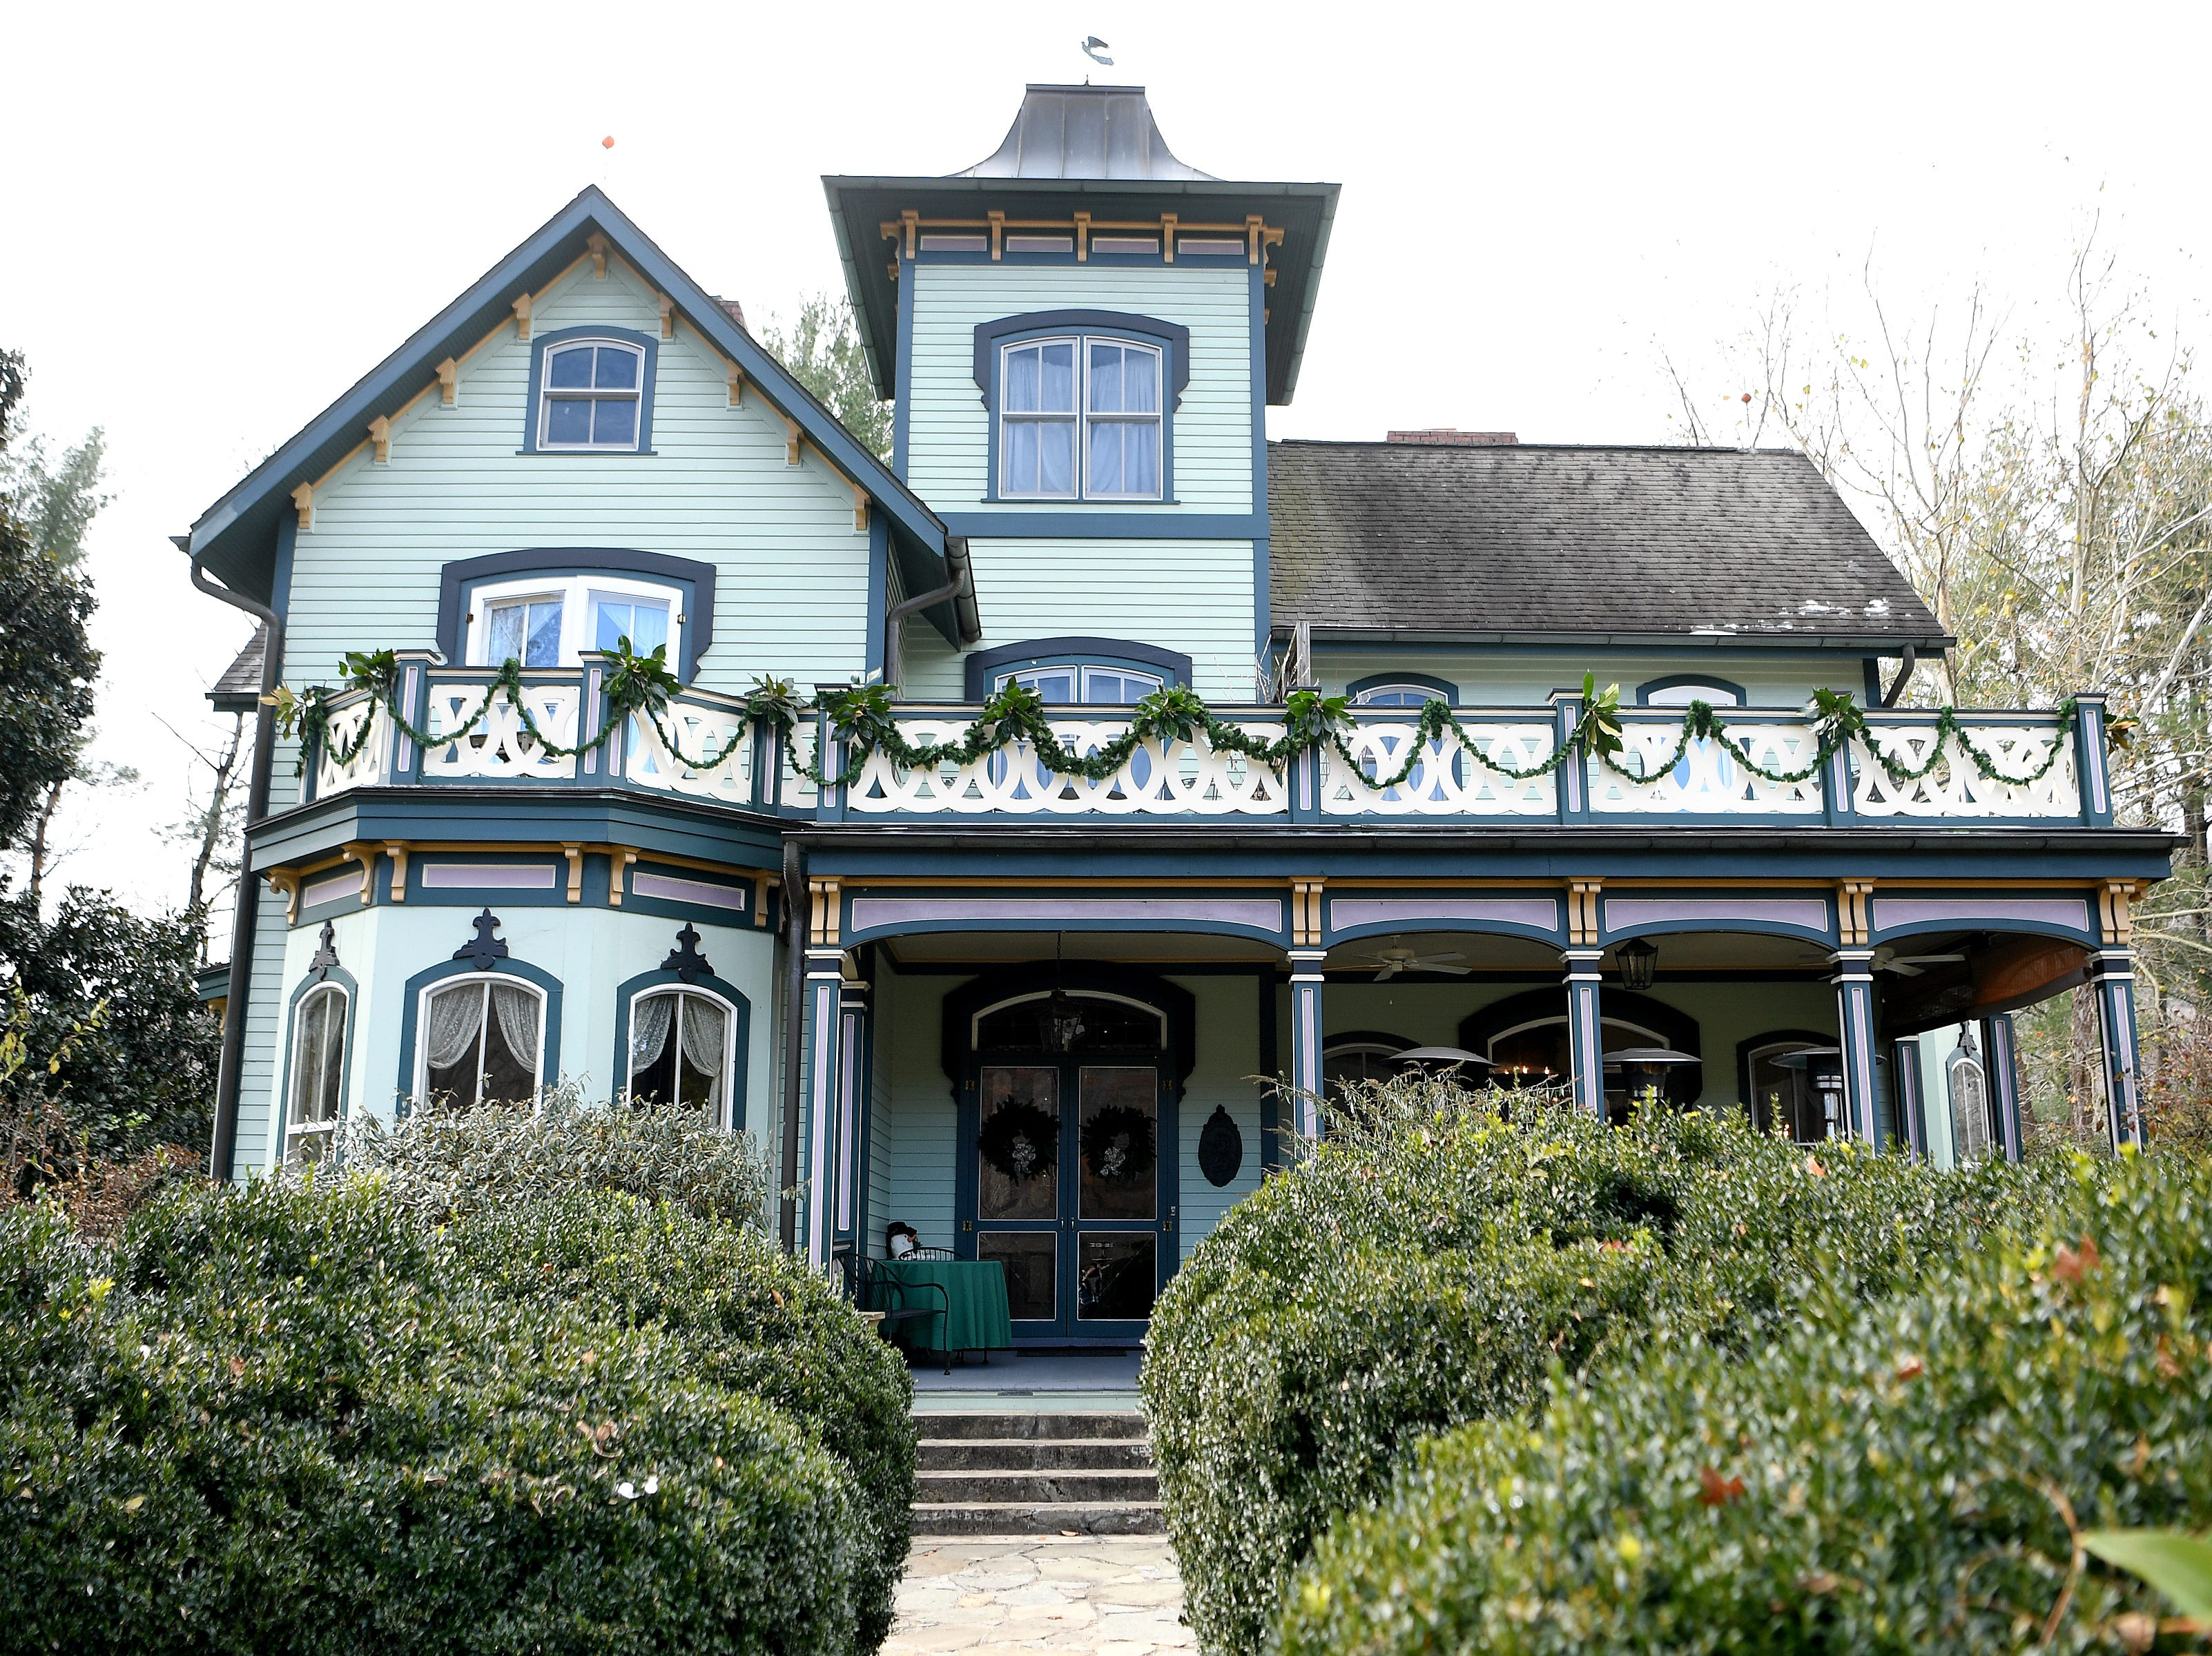 The Mountain Magnolia Inn was built in Hot Springs as a home for the Rumbough family in 1868. It was purchased by the Nagle family and restored to its former glory in 1996. The house is now an inn and restaurant filled with historic pieces from the Rumbough family.